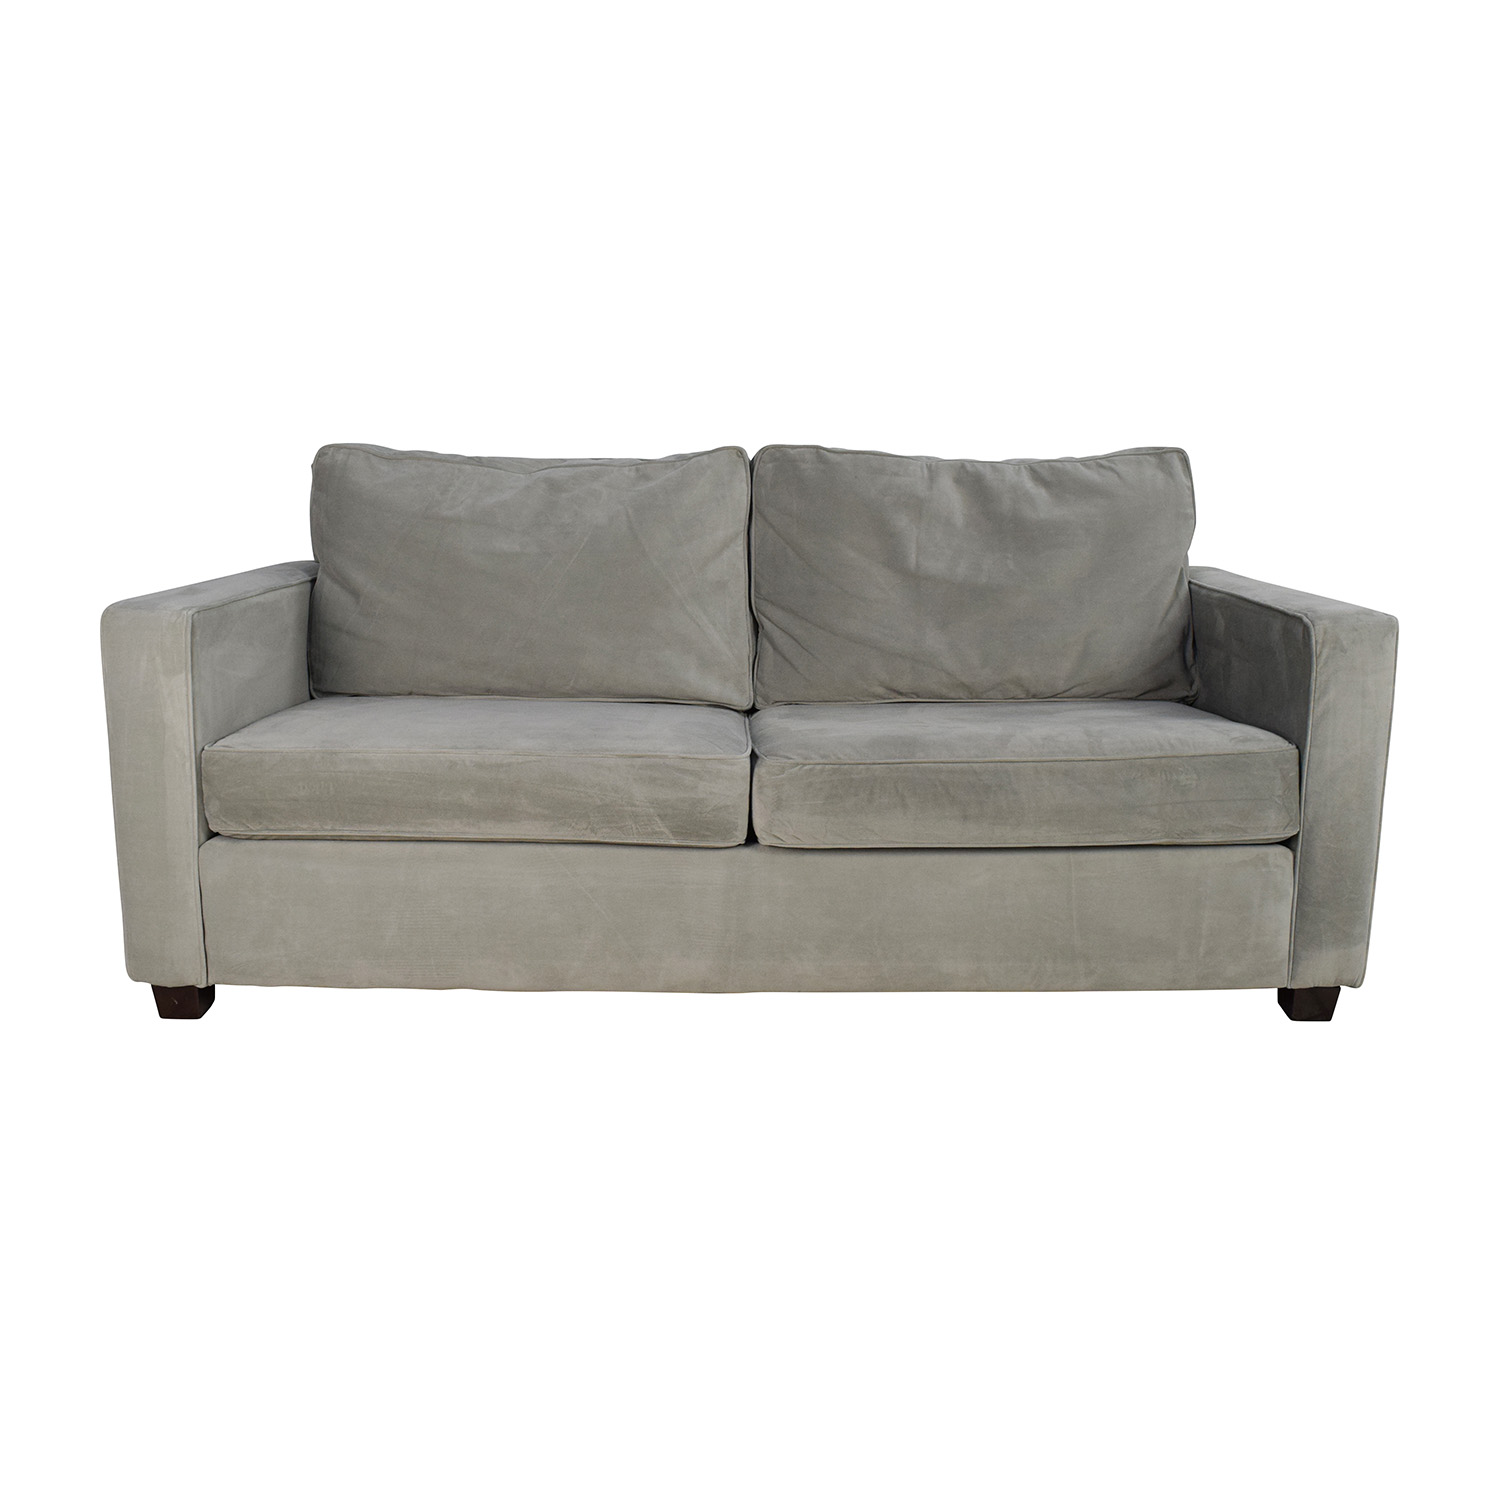 50% OFF Carlyle Carlyle Three Cushion Sofa Sofas